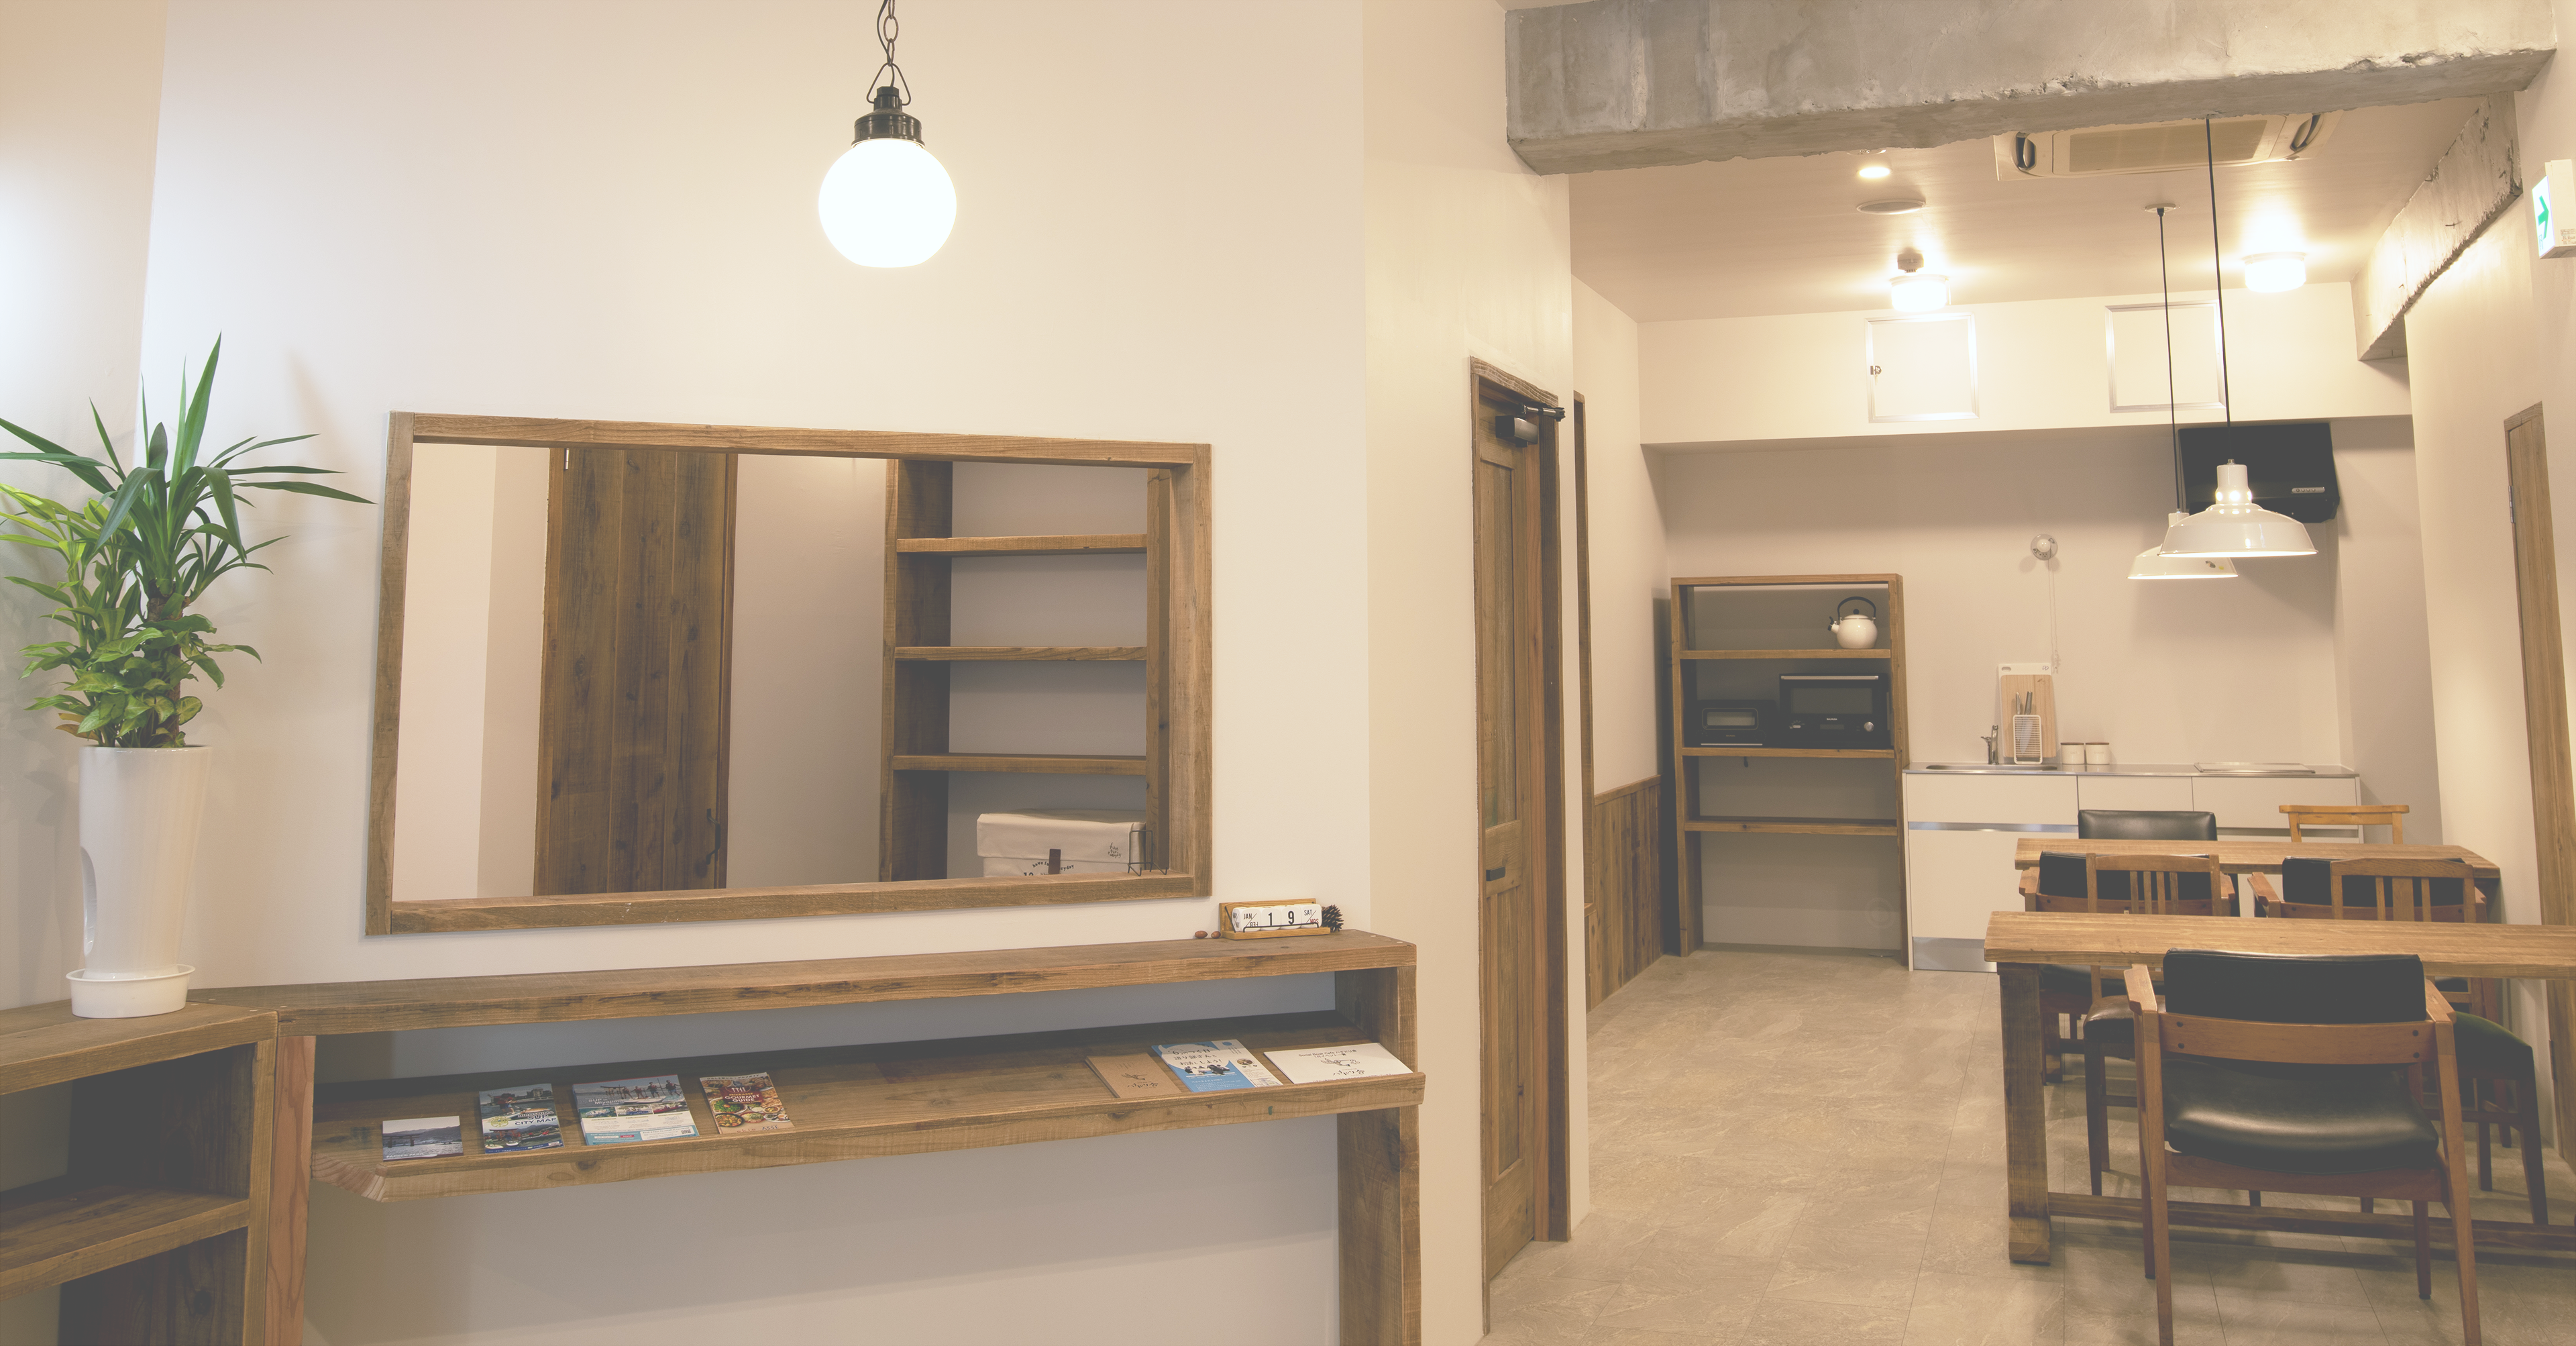 akicafe inn guesthouseの受付の画像